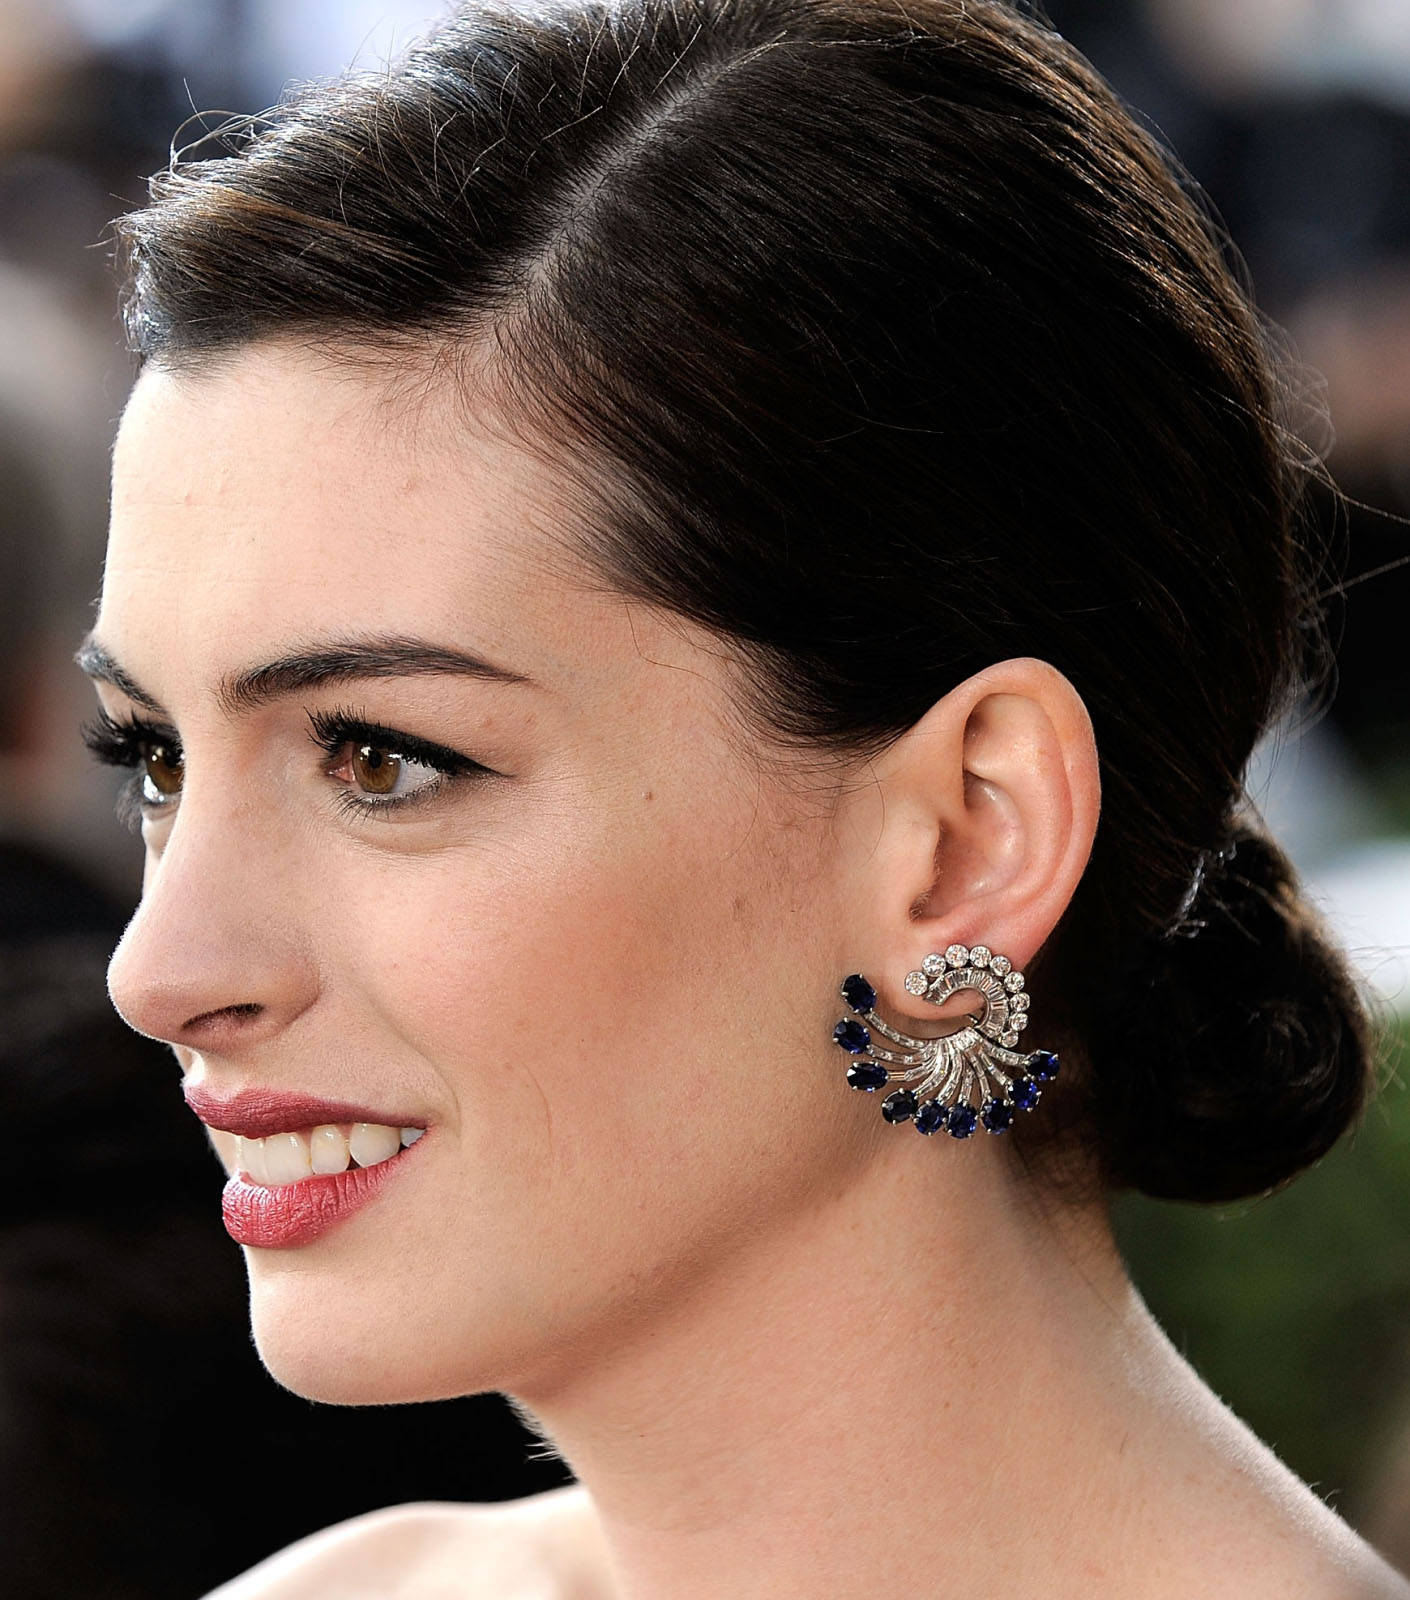 Anne Hathaway Wears The Jewelry To The Next Level: David Warshofsky